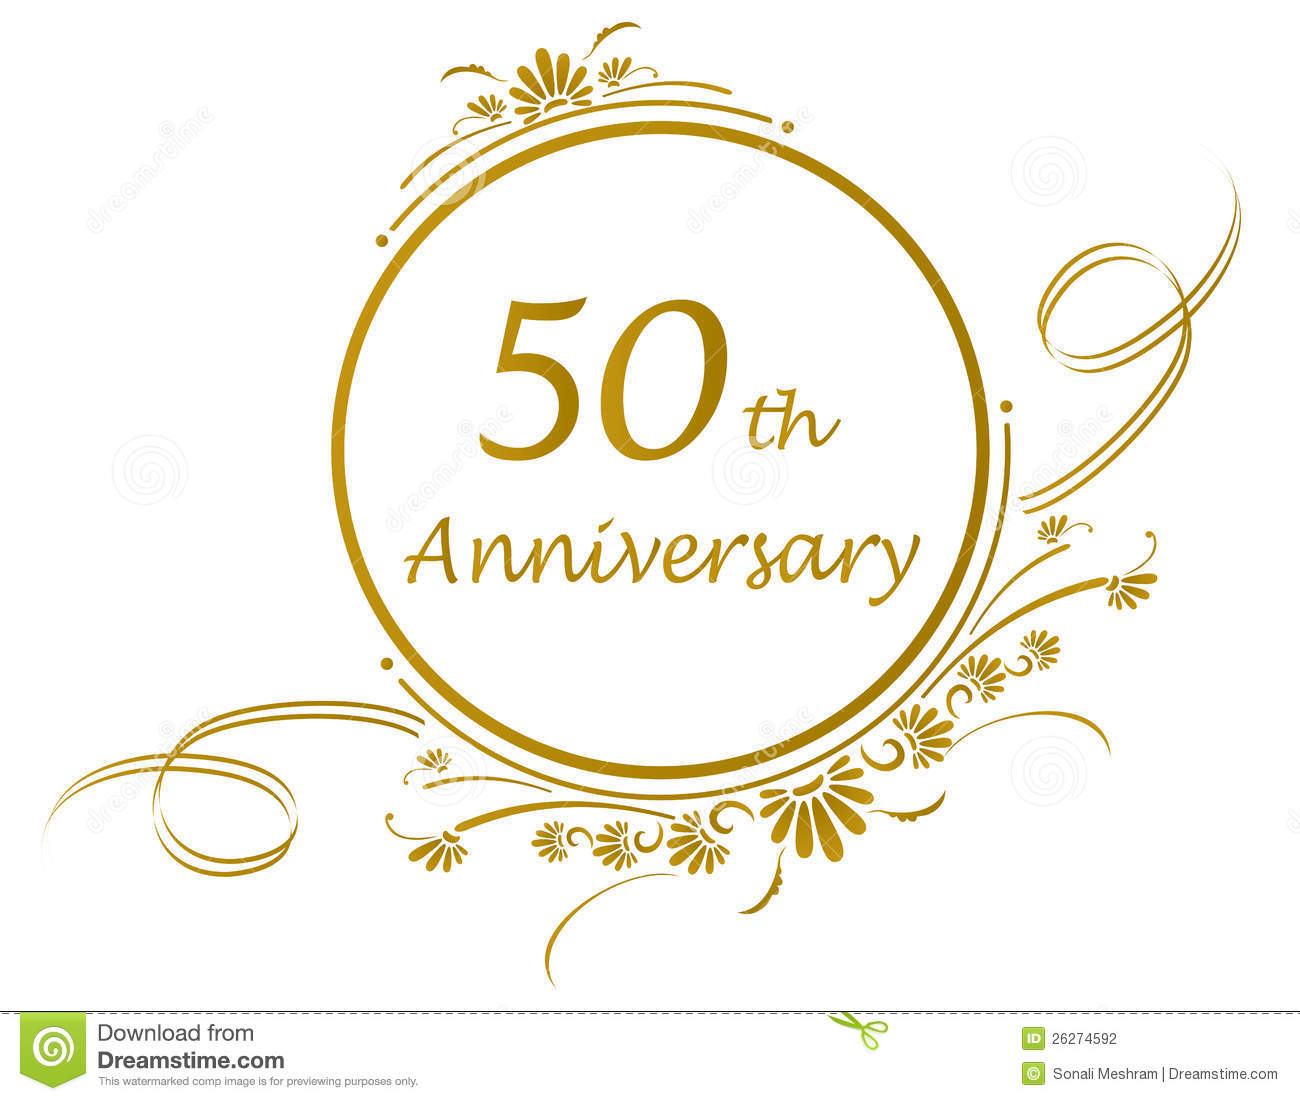 50th Anniversary Logo Clip Art 50th Anniversary Clip Art 50th ...